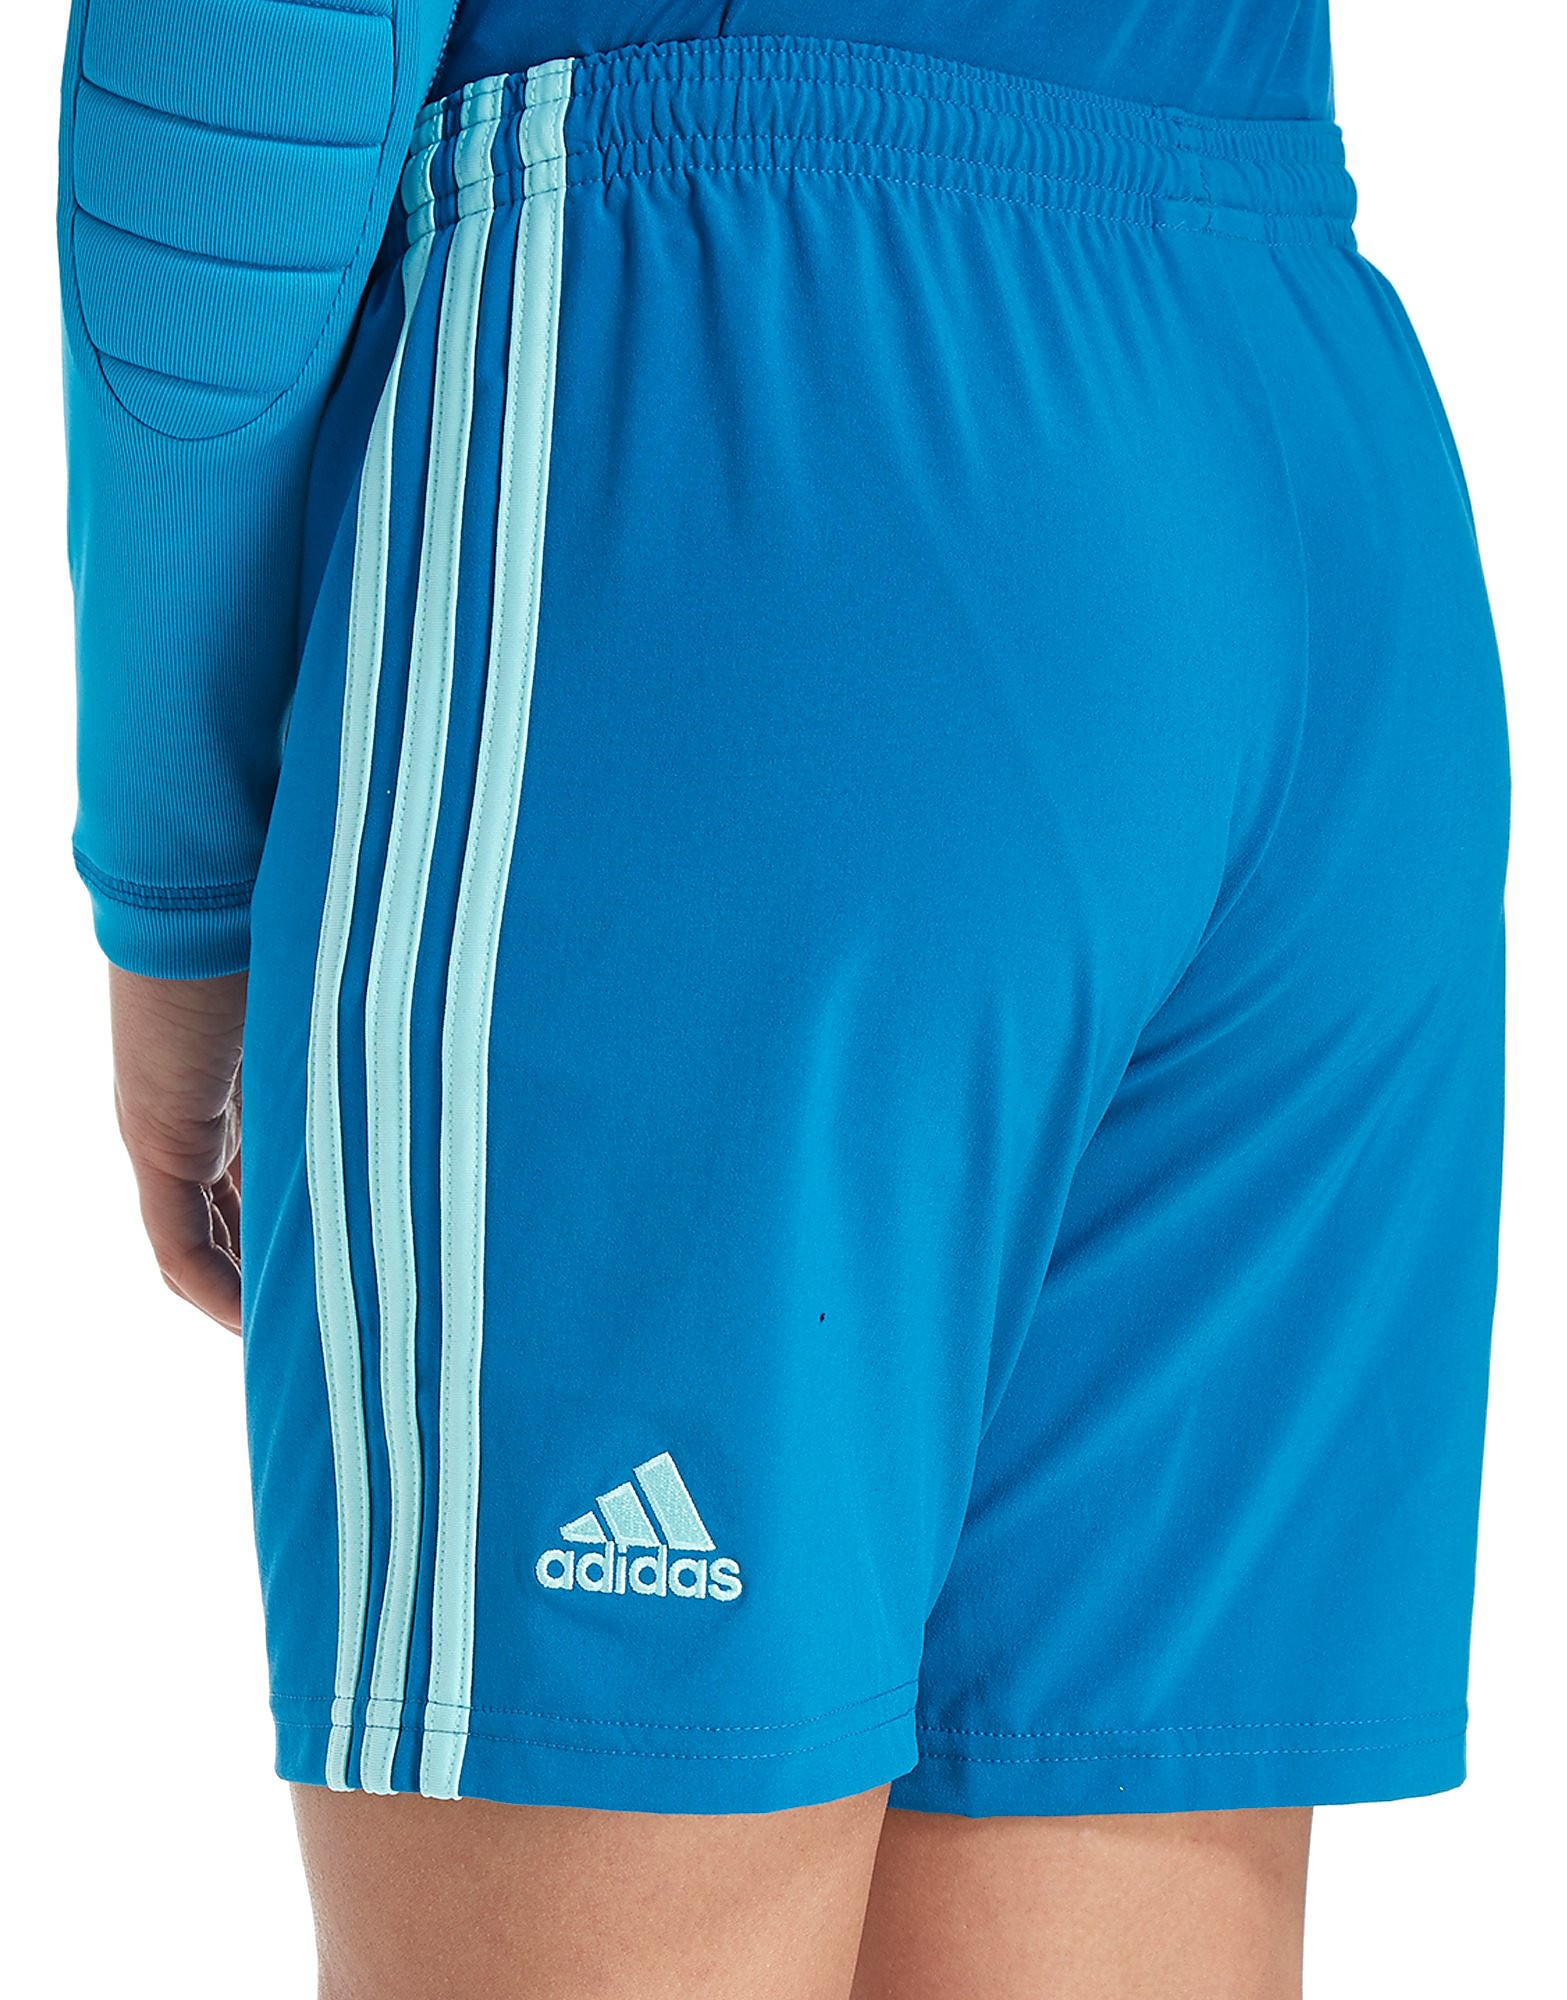 adidas Wales 2018 Home Goalkeeper Shorts Junior